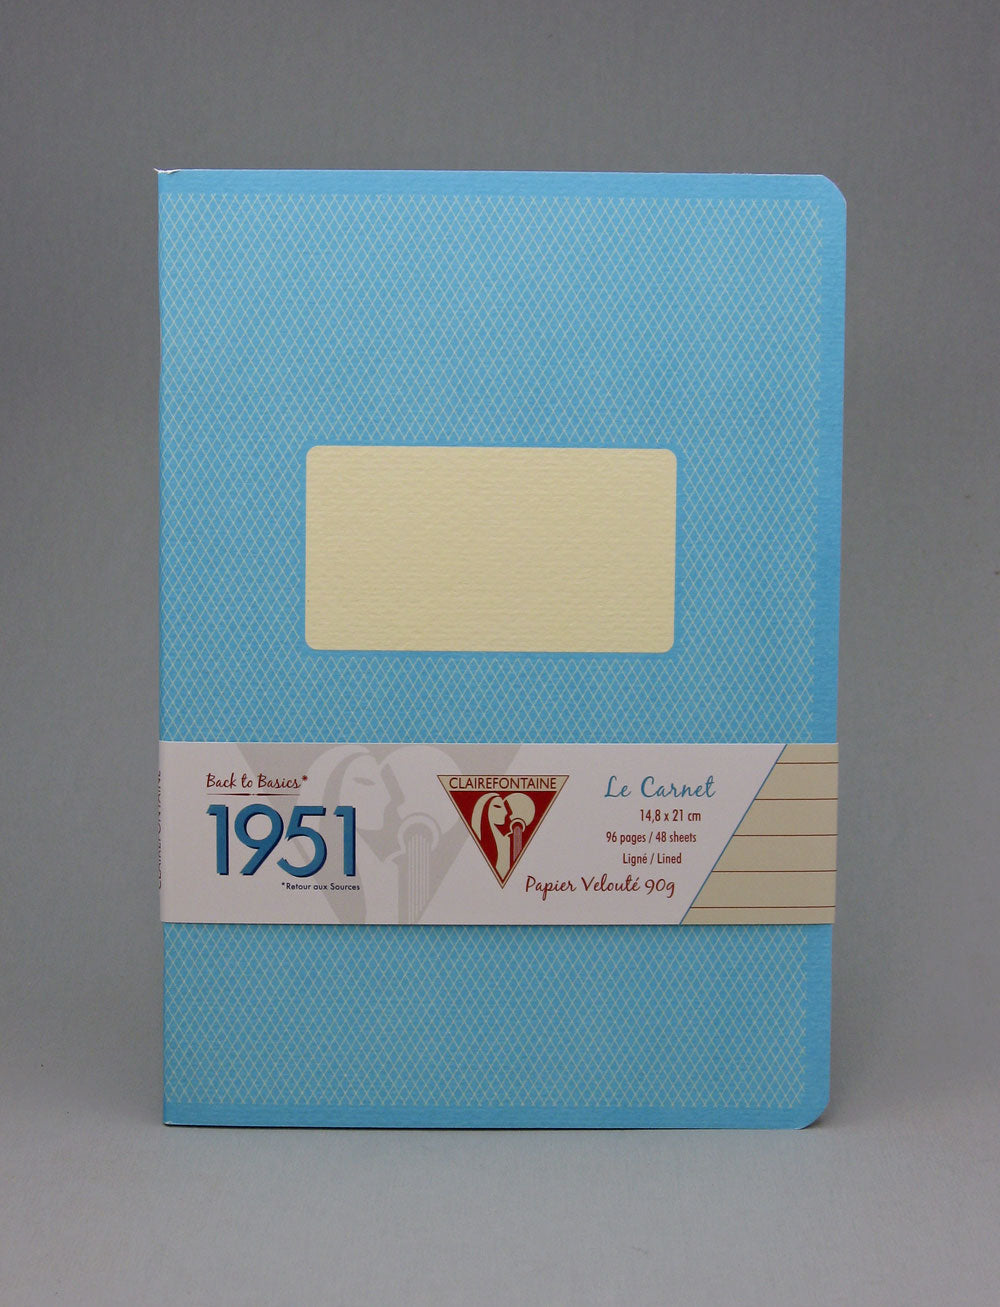 Clairefontaine 1951 Staplebound Notebook - Turquoise